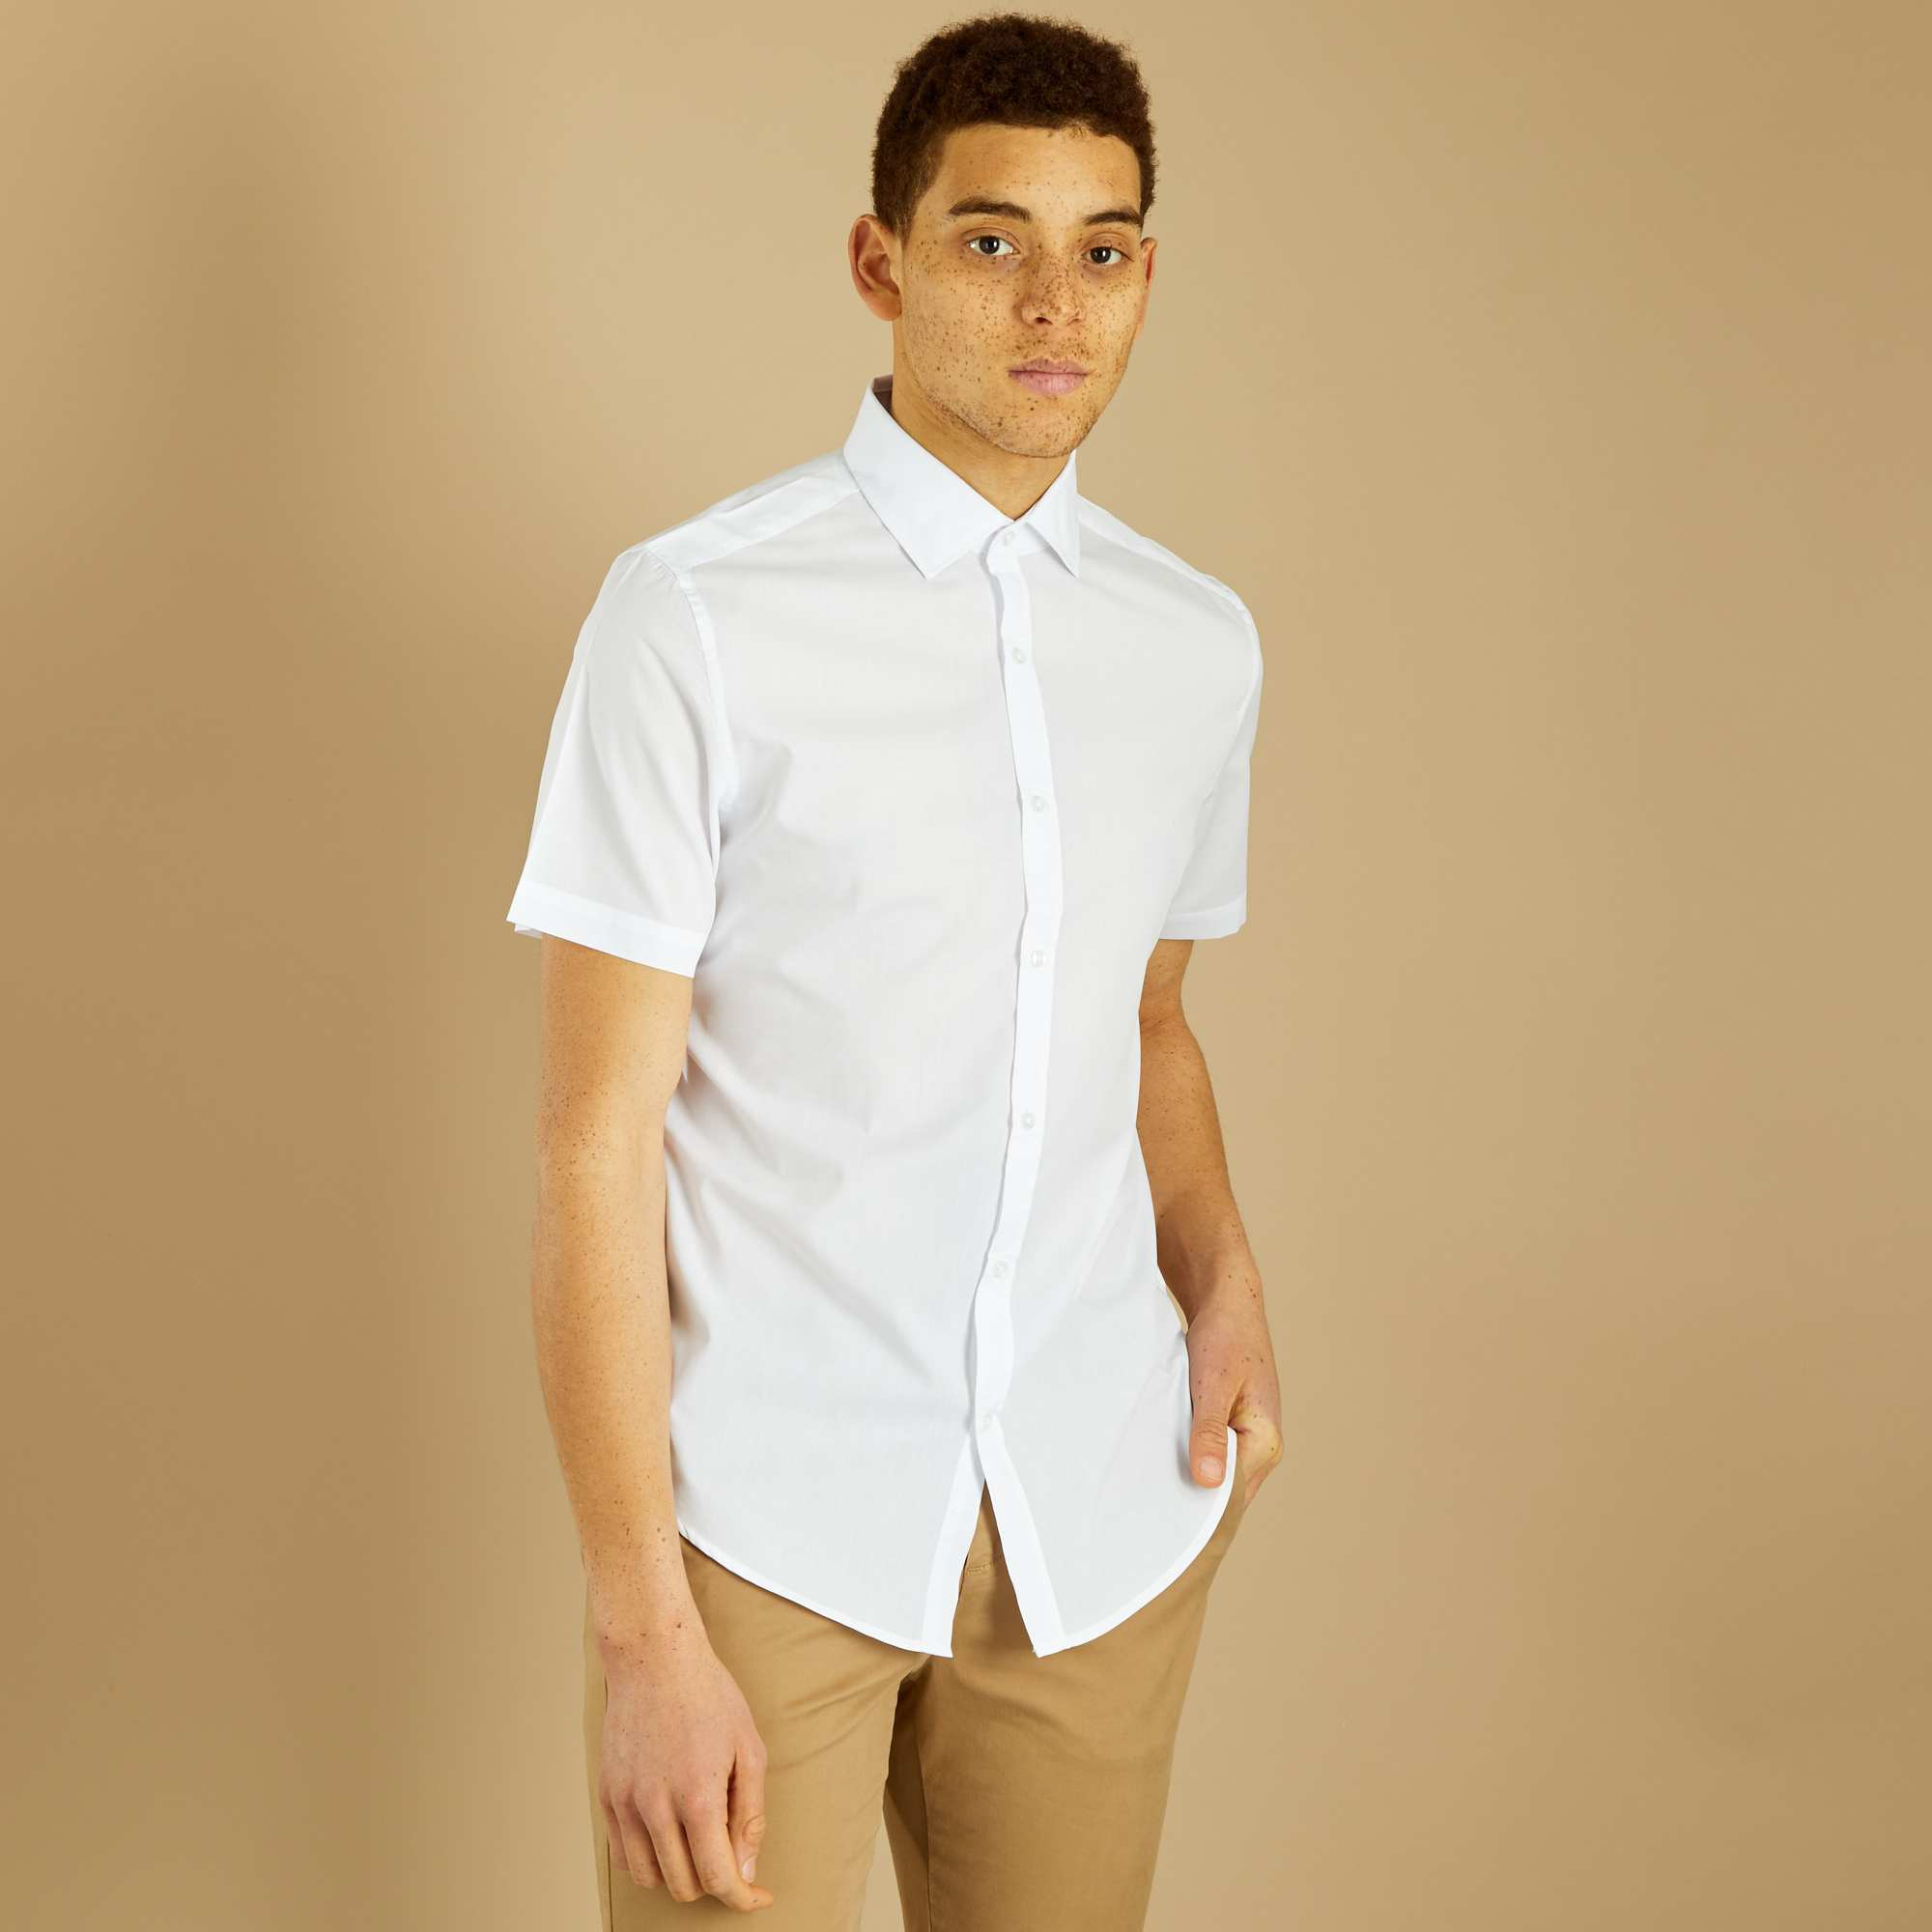 Chemise regular manches courtes blanc Homme. Loading zoom